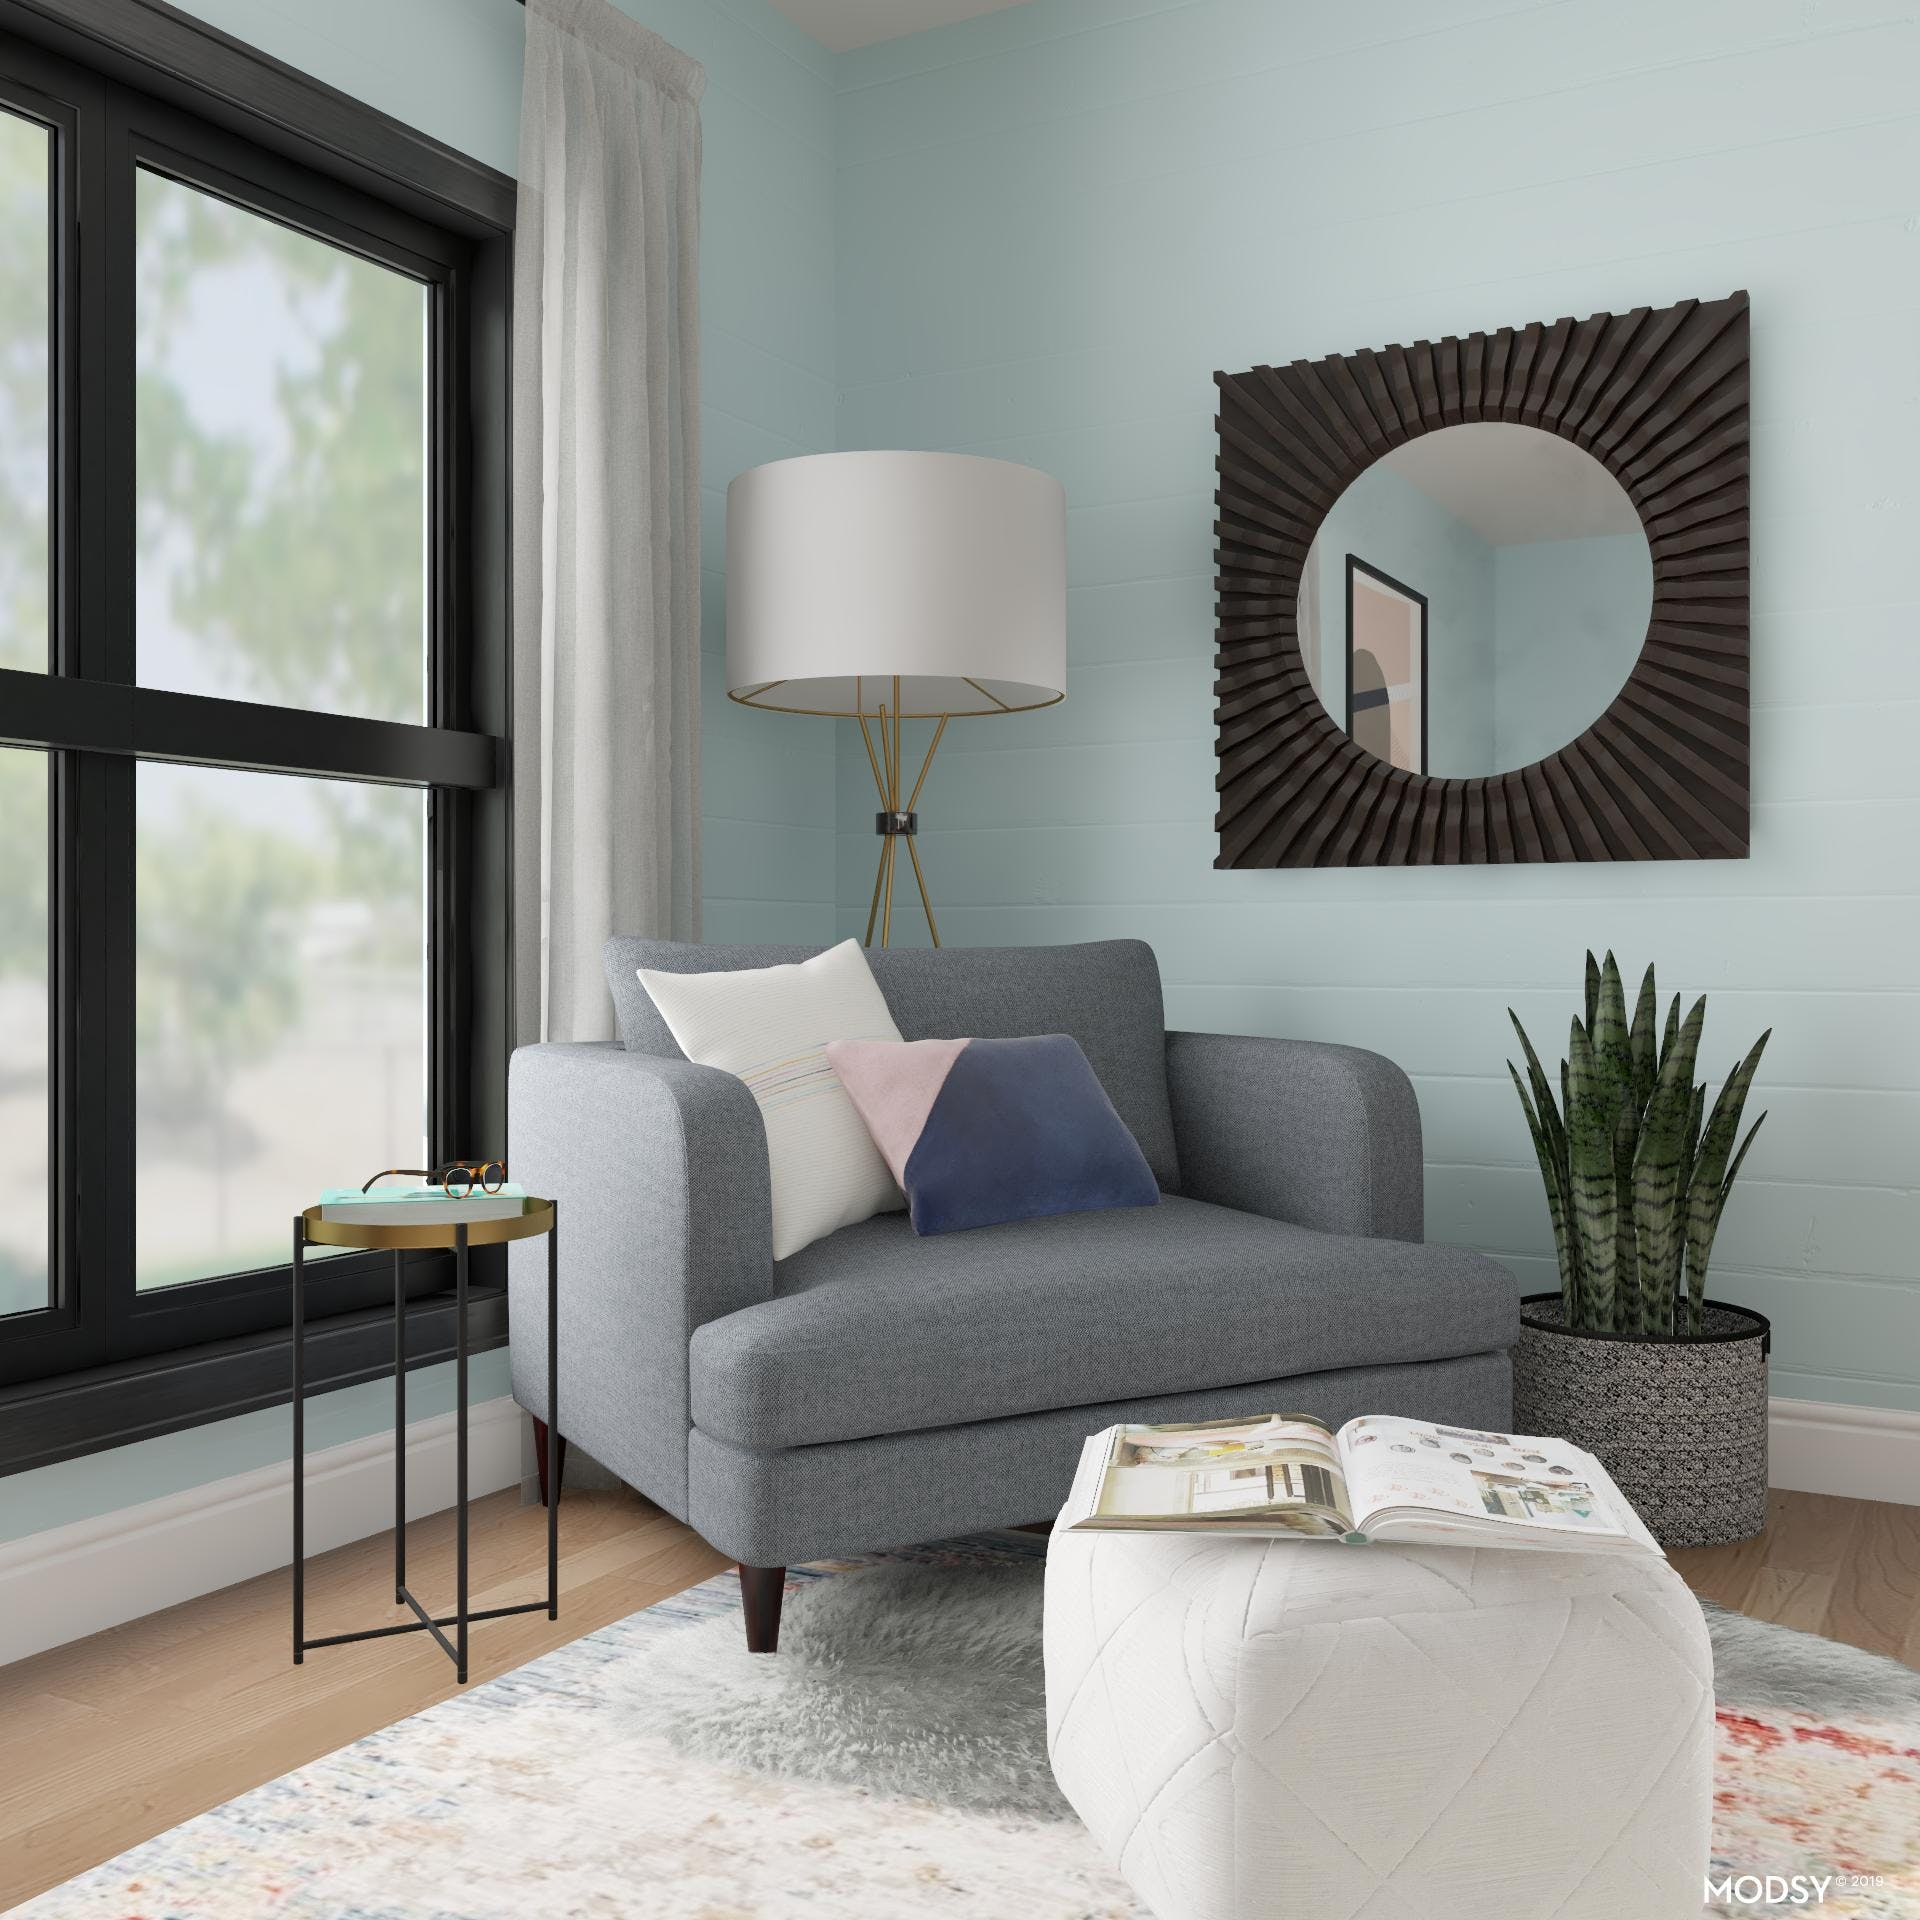 A Reading Nook for the Urban Dreamer